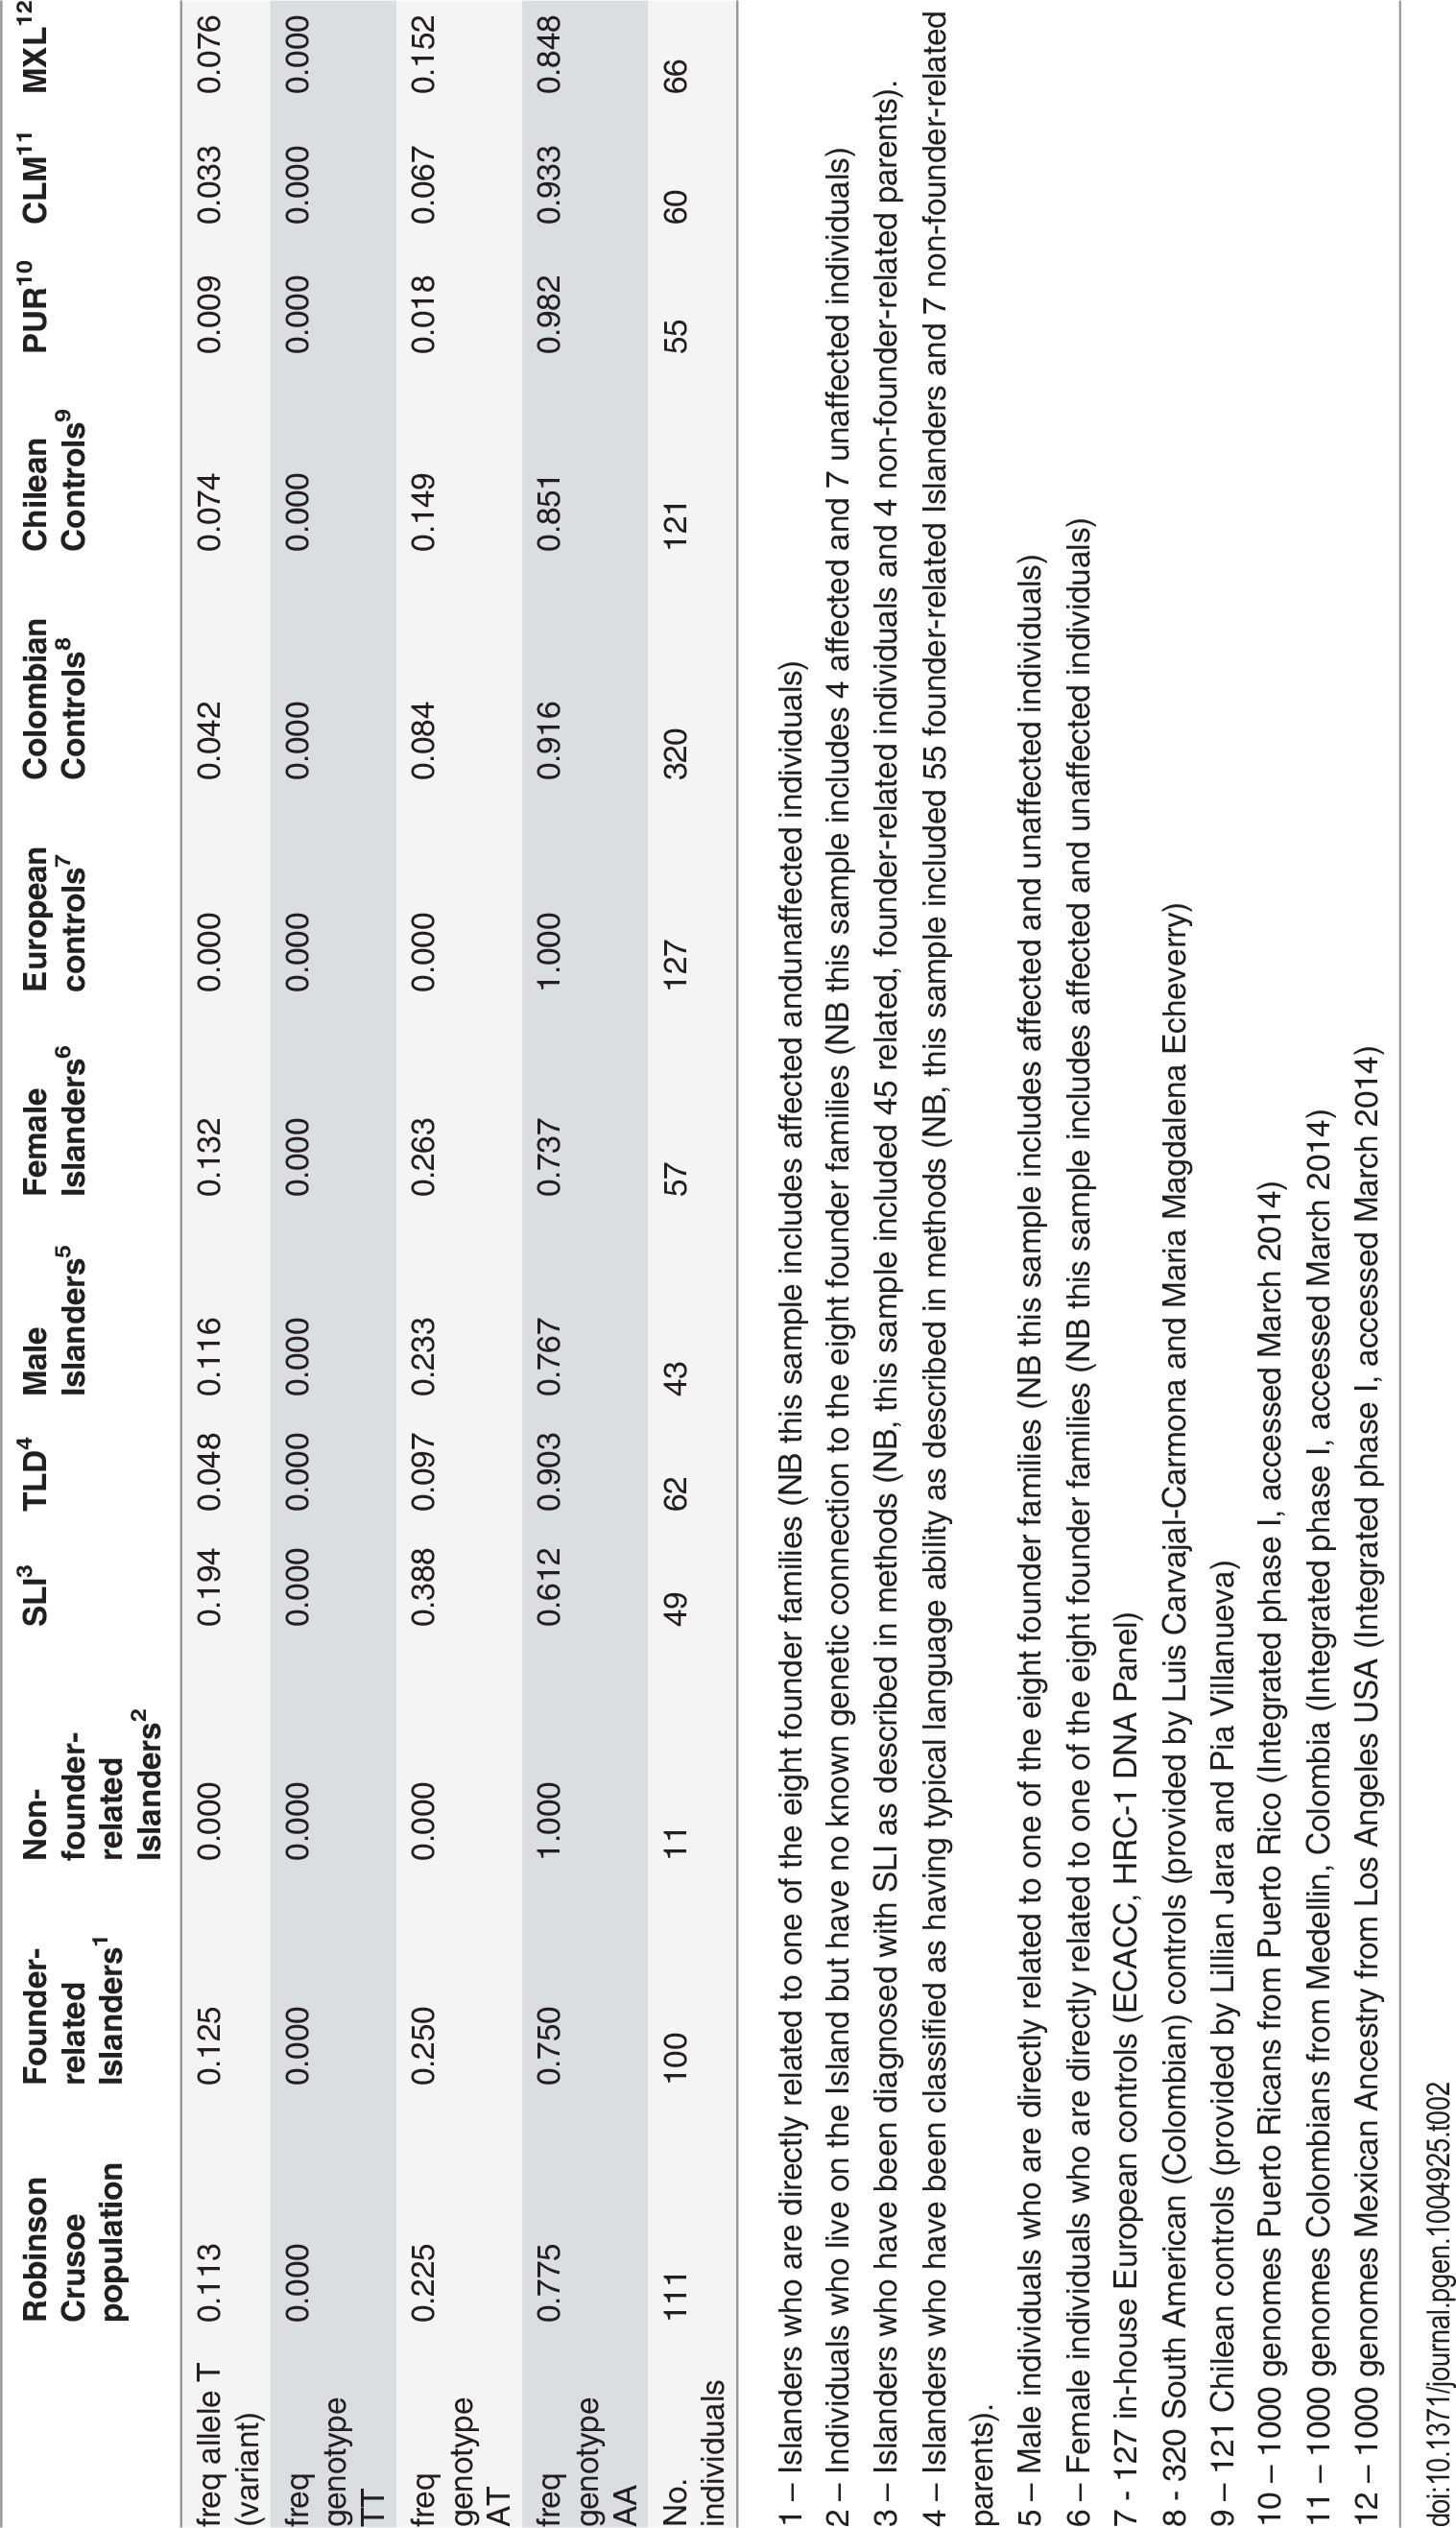 Allele and genotype frequencies of rs144169475 in the Robinson Crusoe validation cohort.